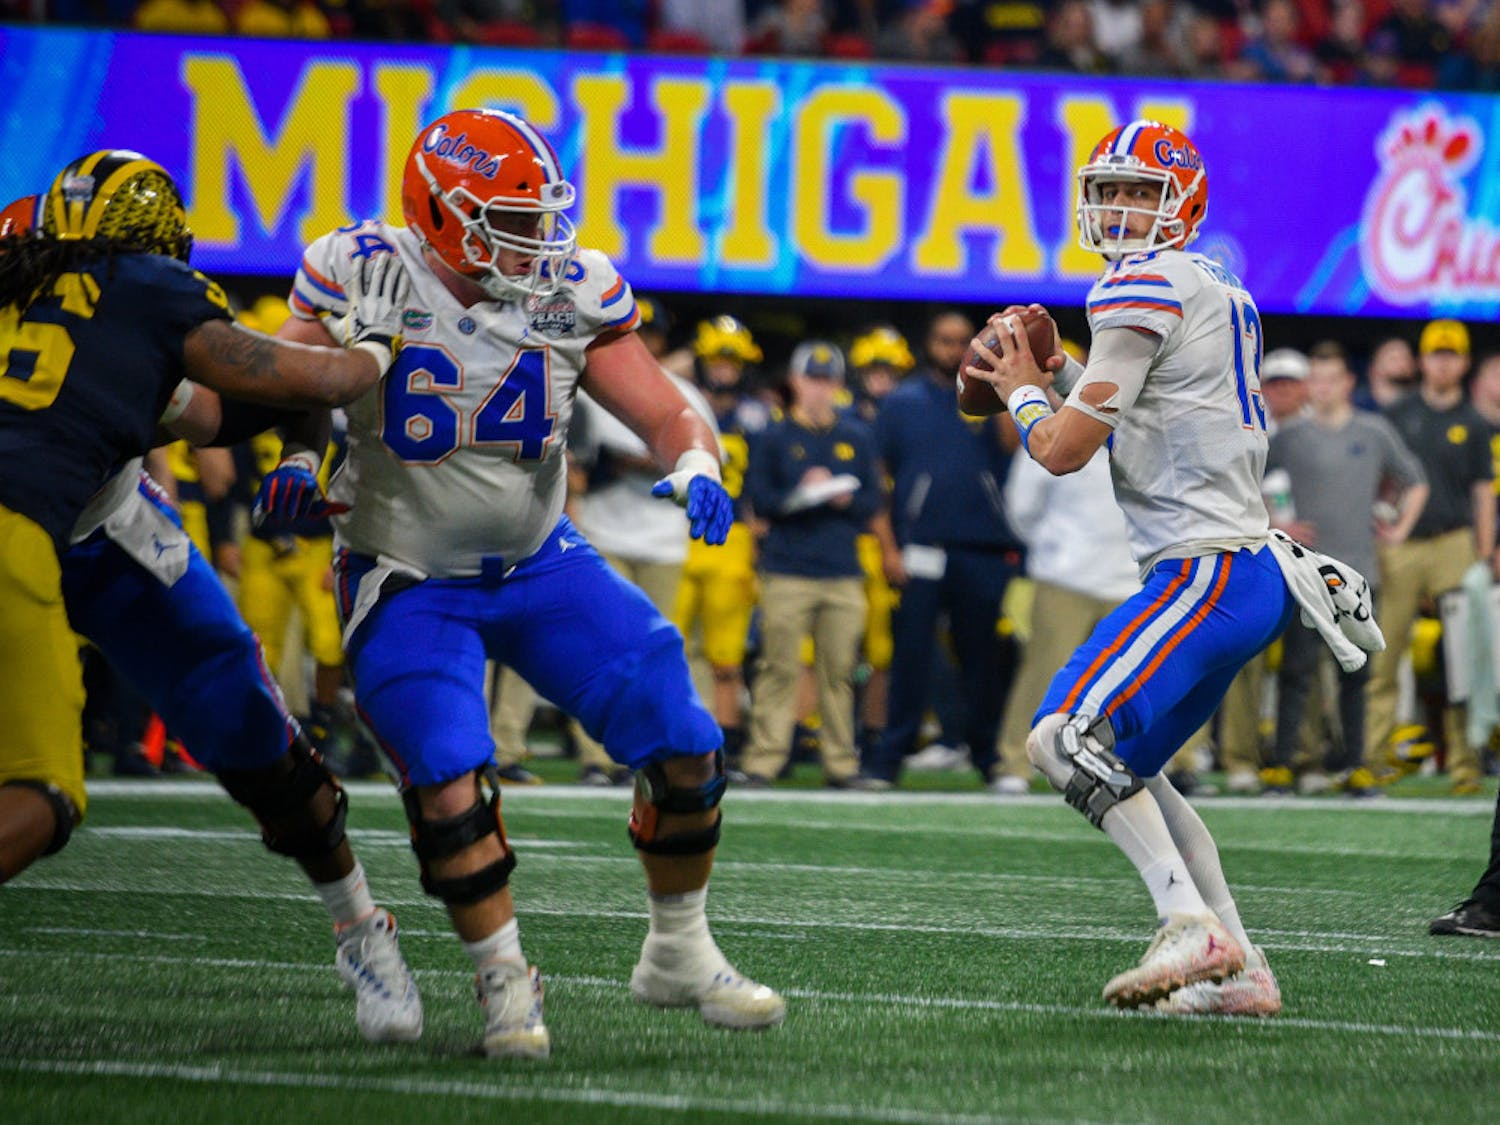 Florida quarterback Feleipe Franks threw for 173 yards on 13-of-23 passing and a touchdown in UF's Peach Bowl win over Michigan in Atlanta on Dec. 29.